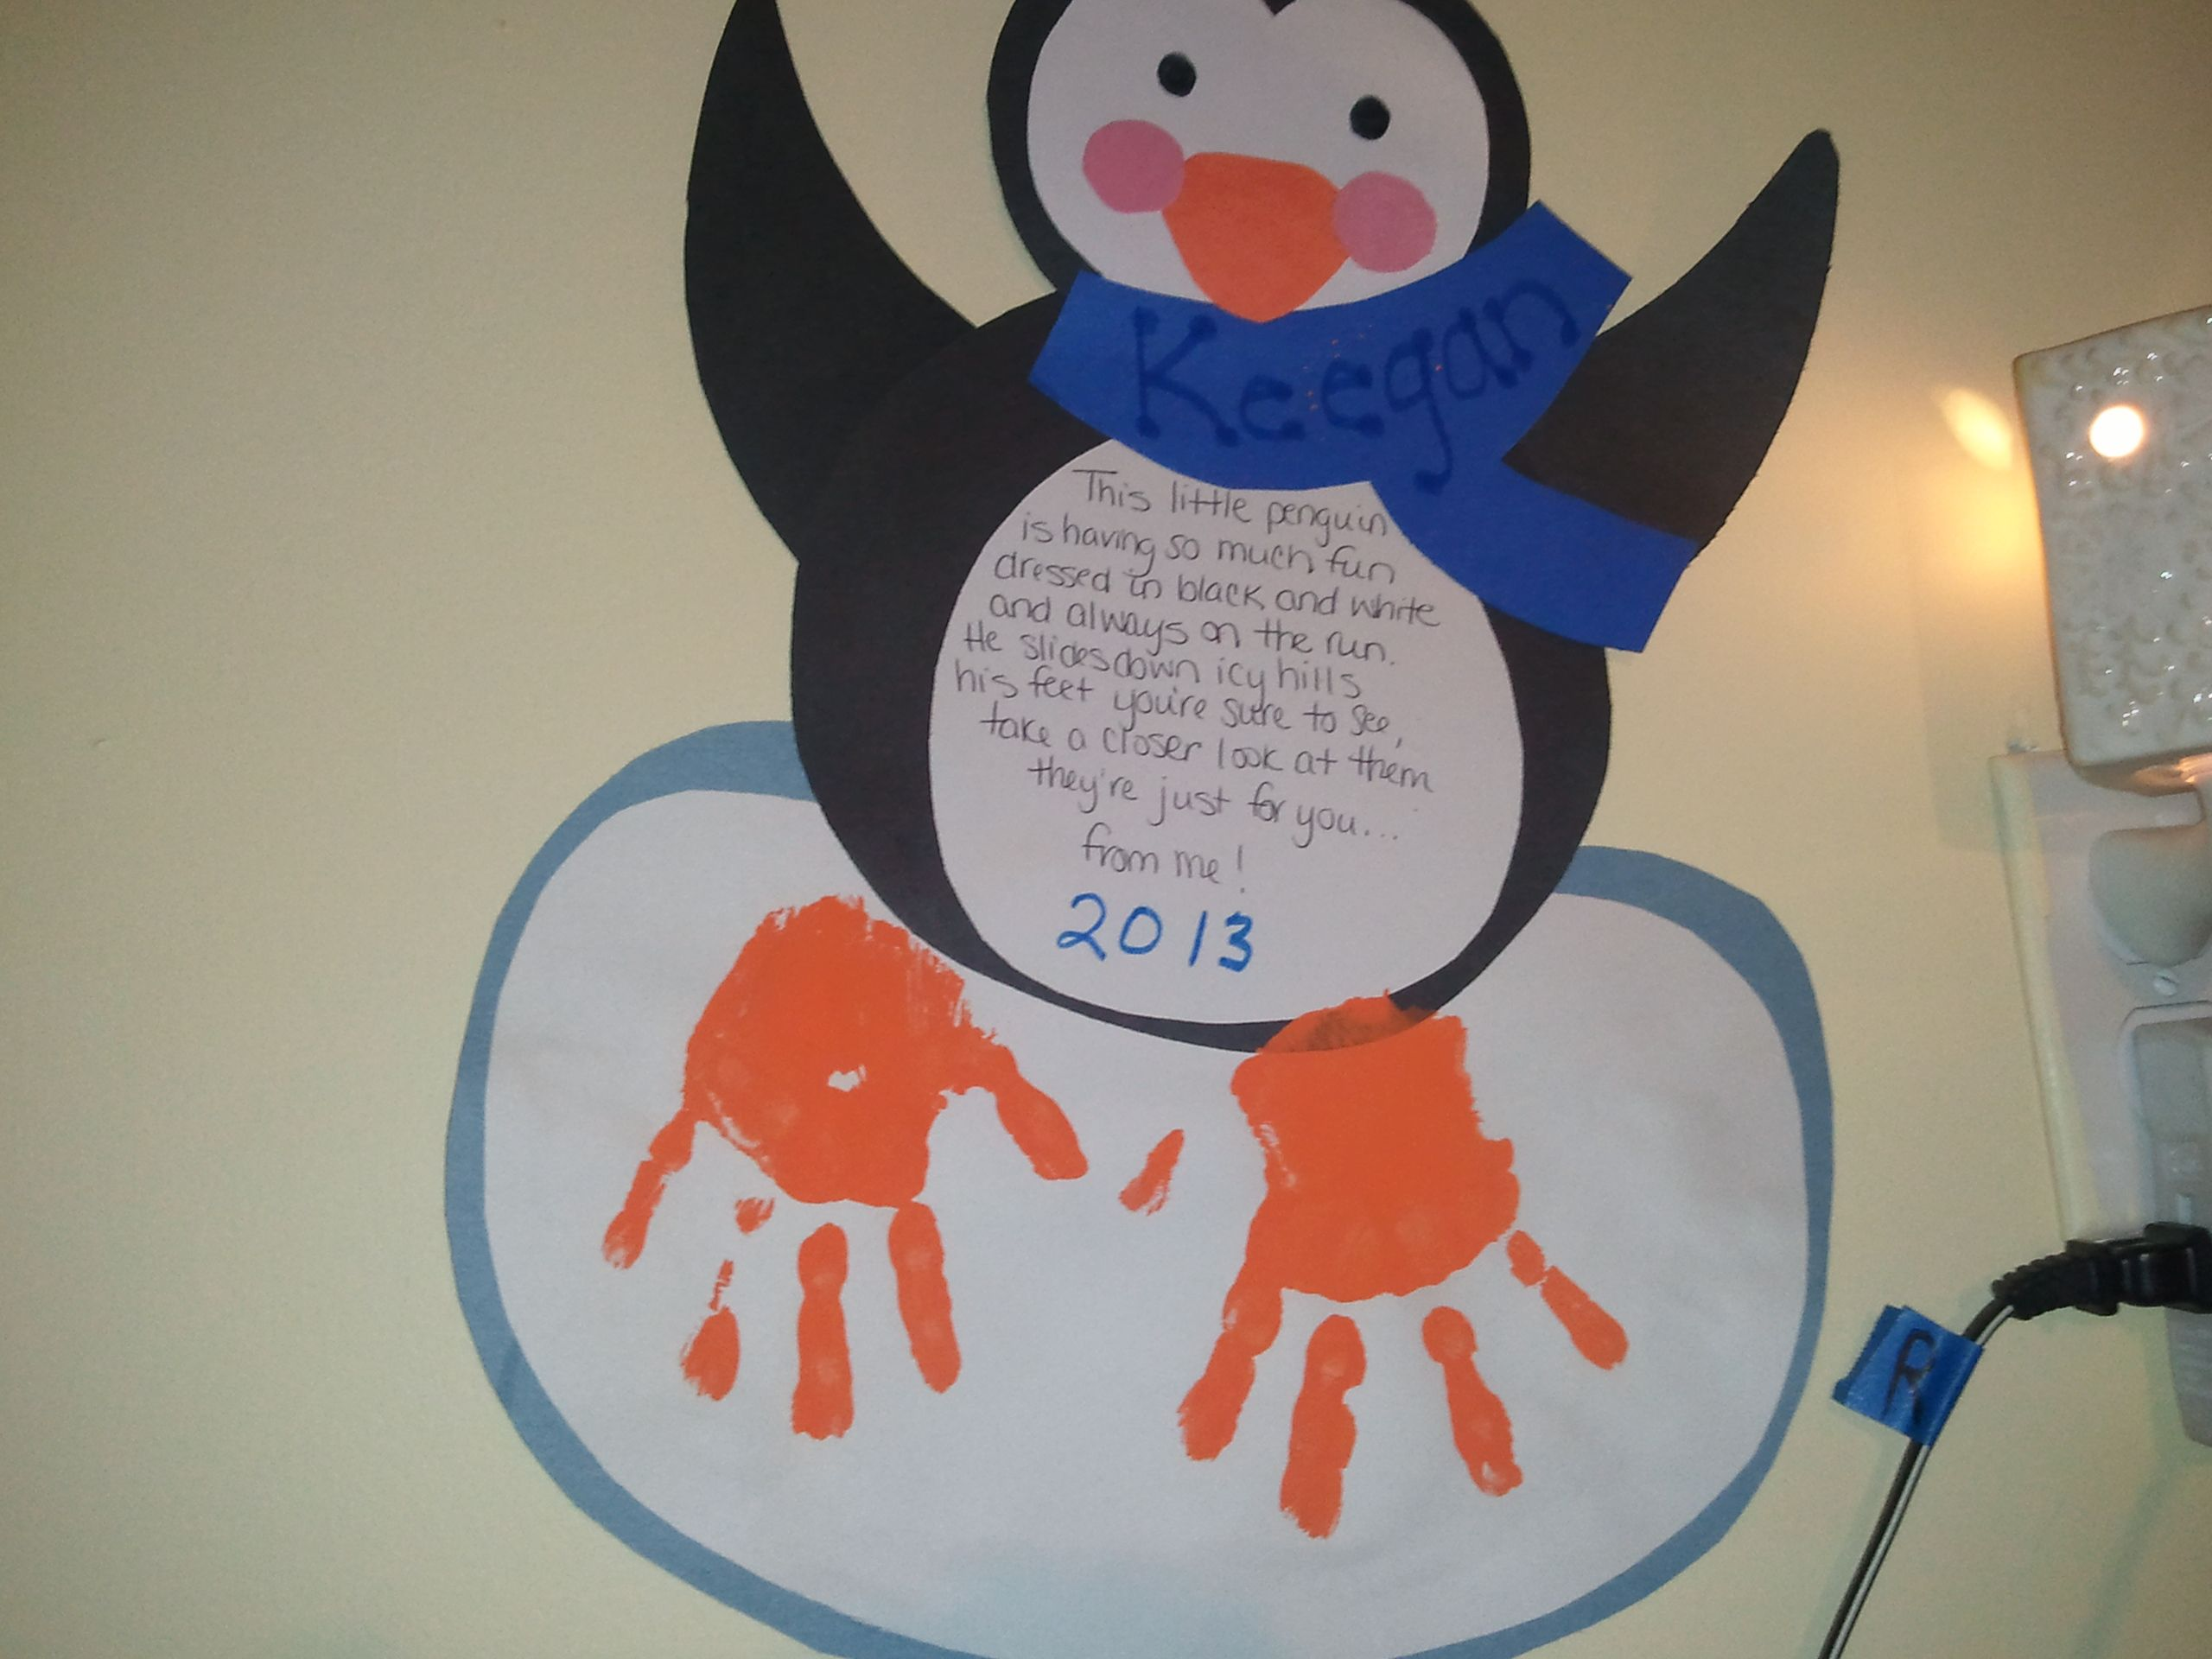 There is a second picture to this project that includes the poem.  Very cute wintery keepsake with kids handprints for penguin feet